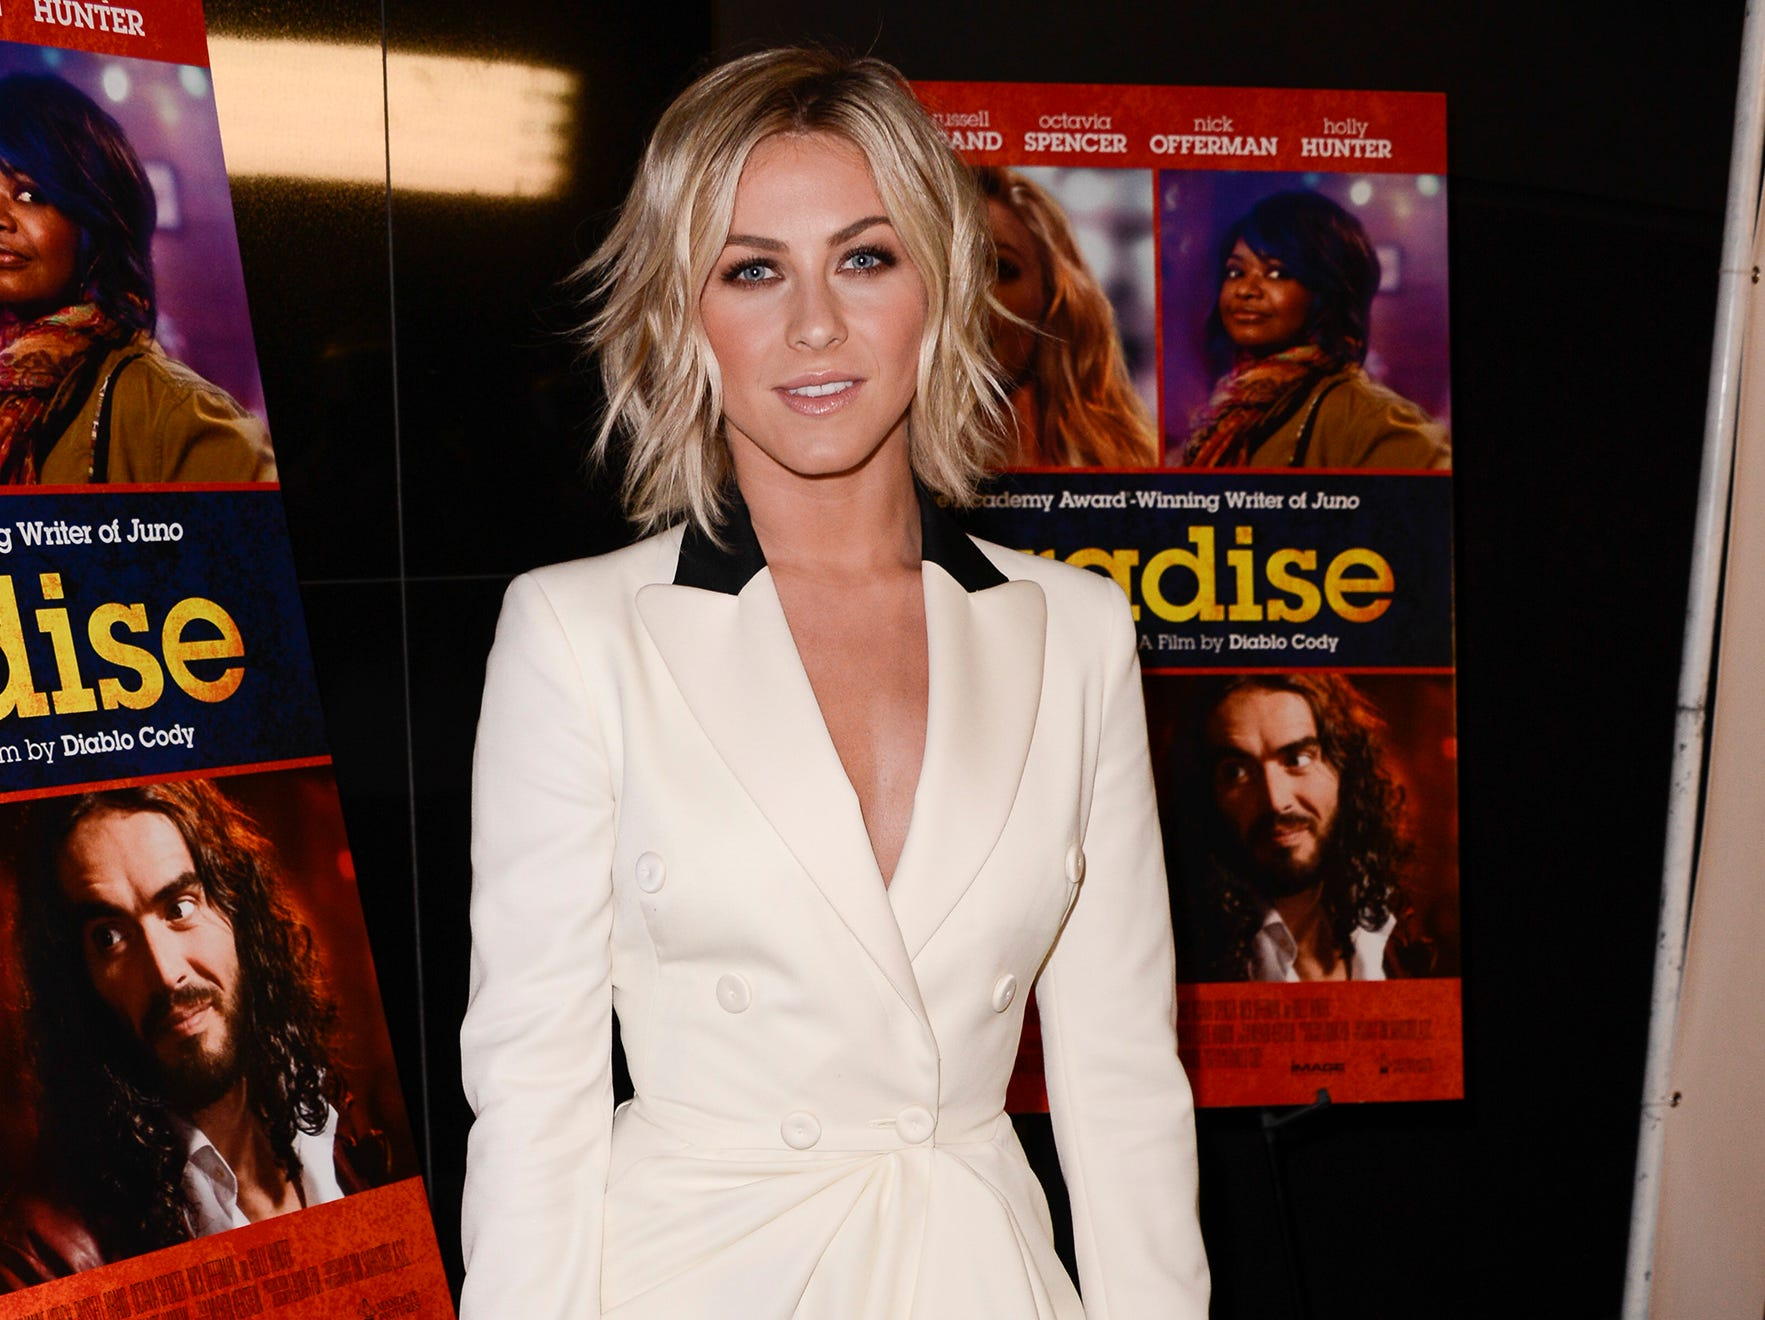 Dancer-actress Julianne Hough looks smart and sharp in her black-tipped white Moschino dress, Stuart Weitzman pumps and Edie Parker clutch. She attends a special screening of 'Paradise' on Aug. 6 in Los Angeles.